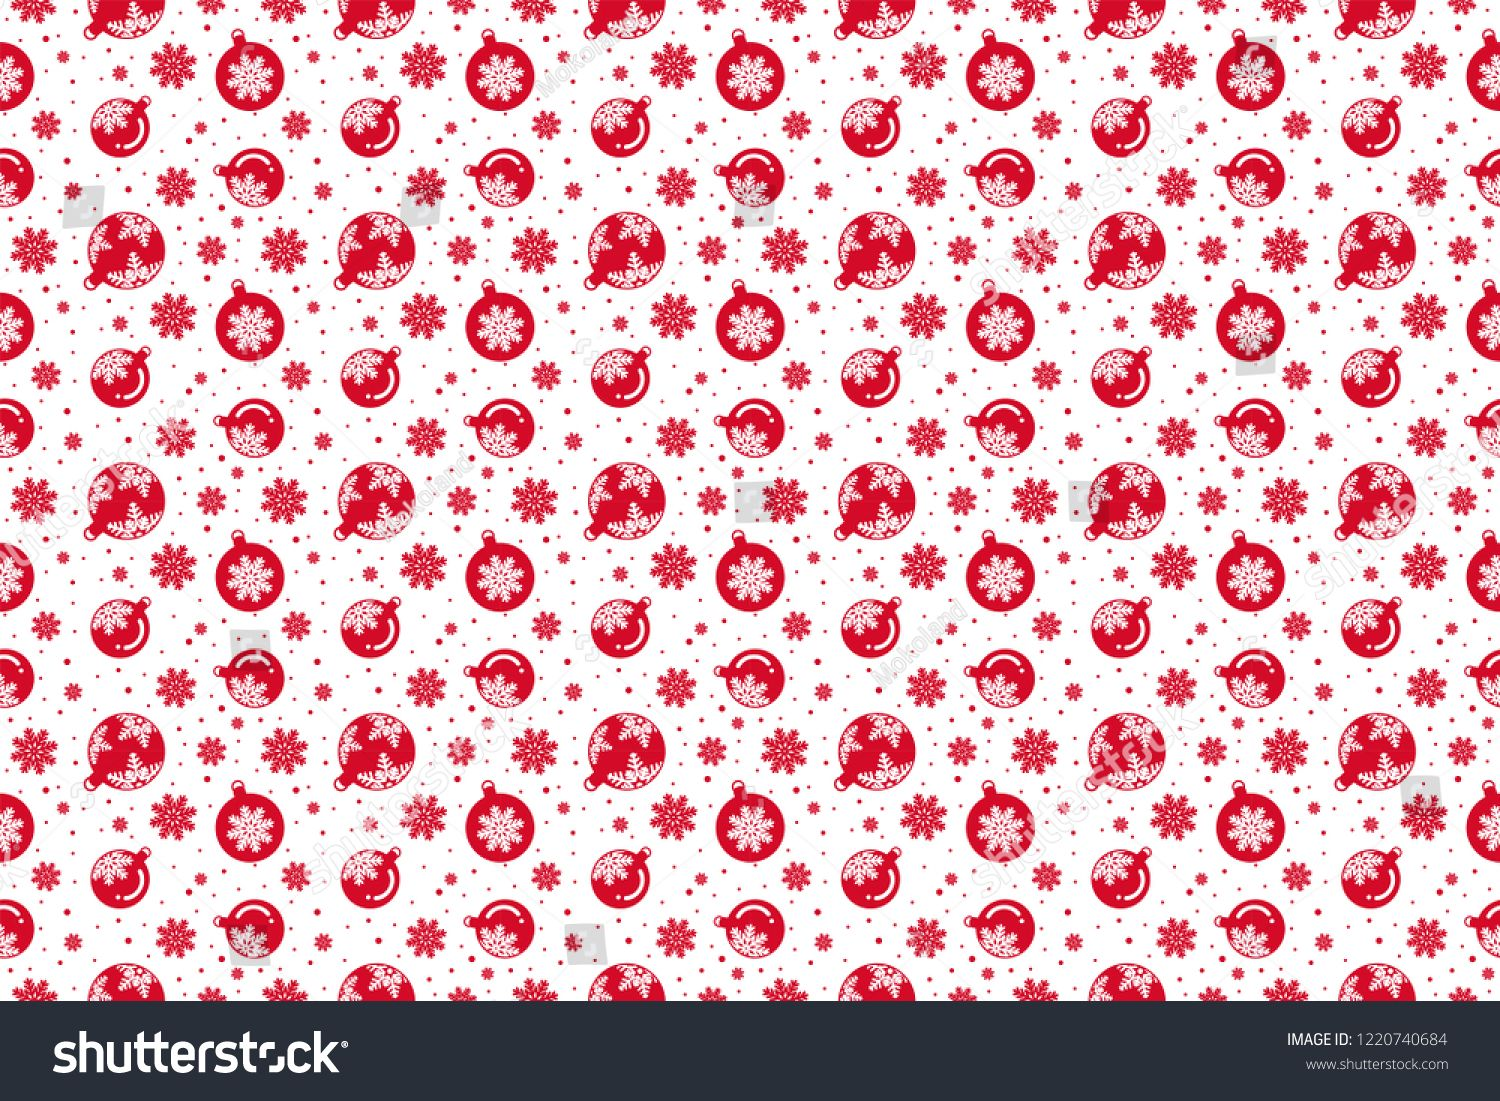 Merry Christmas Pattern Seamless Christmas Wallpaper Red And